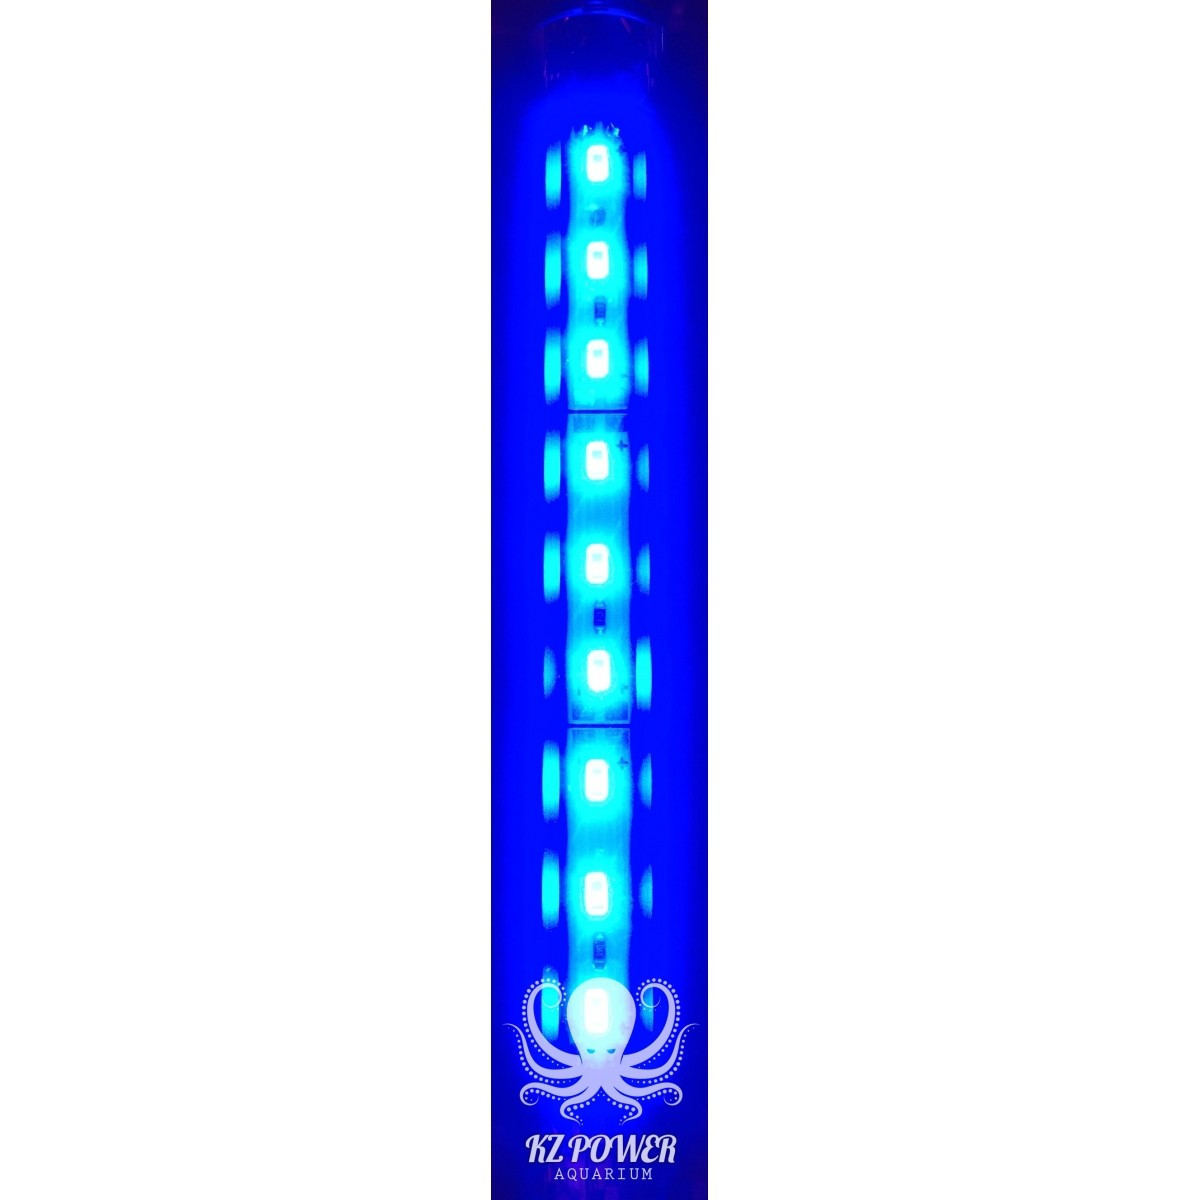 Luminaria Led Aqualumi Azul 45cm + Fonte Bivolt  - KZ Power